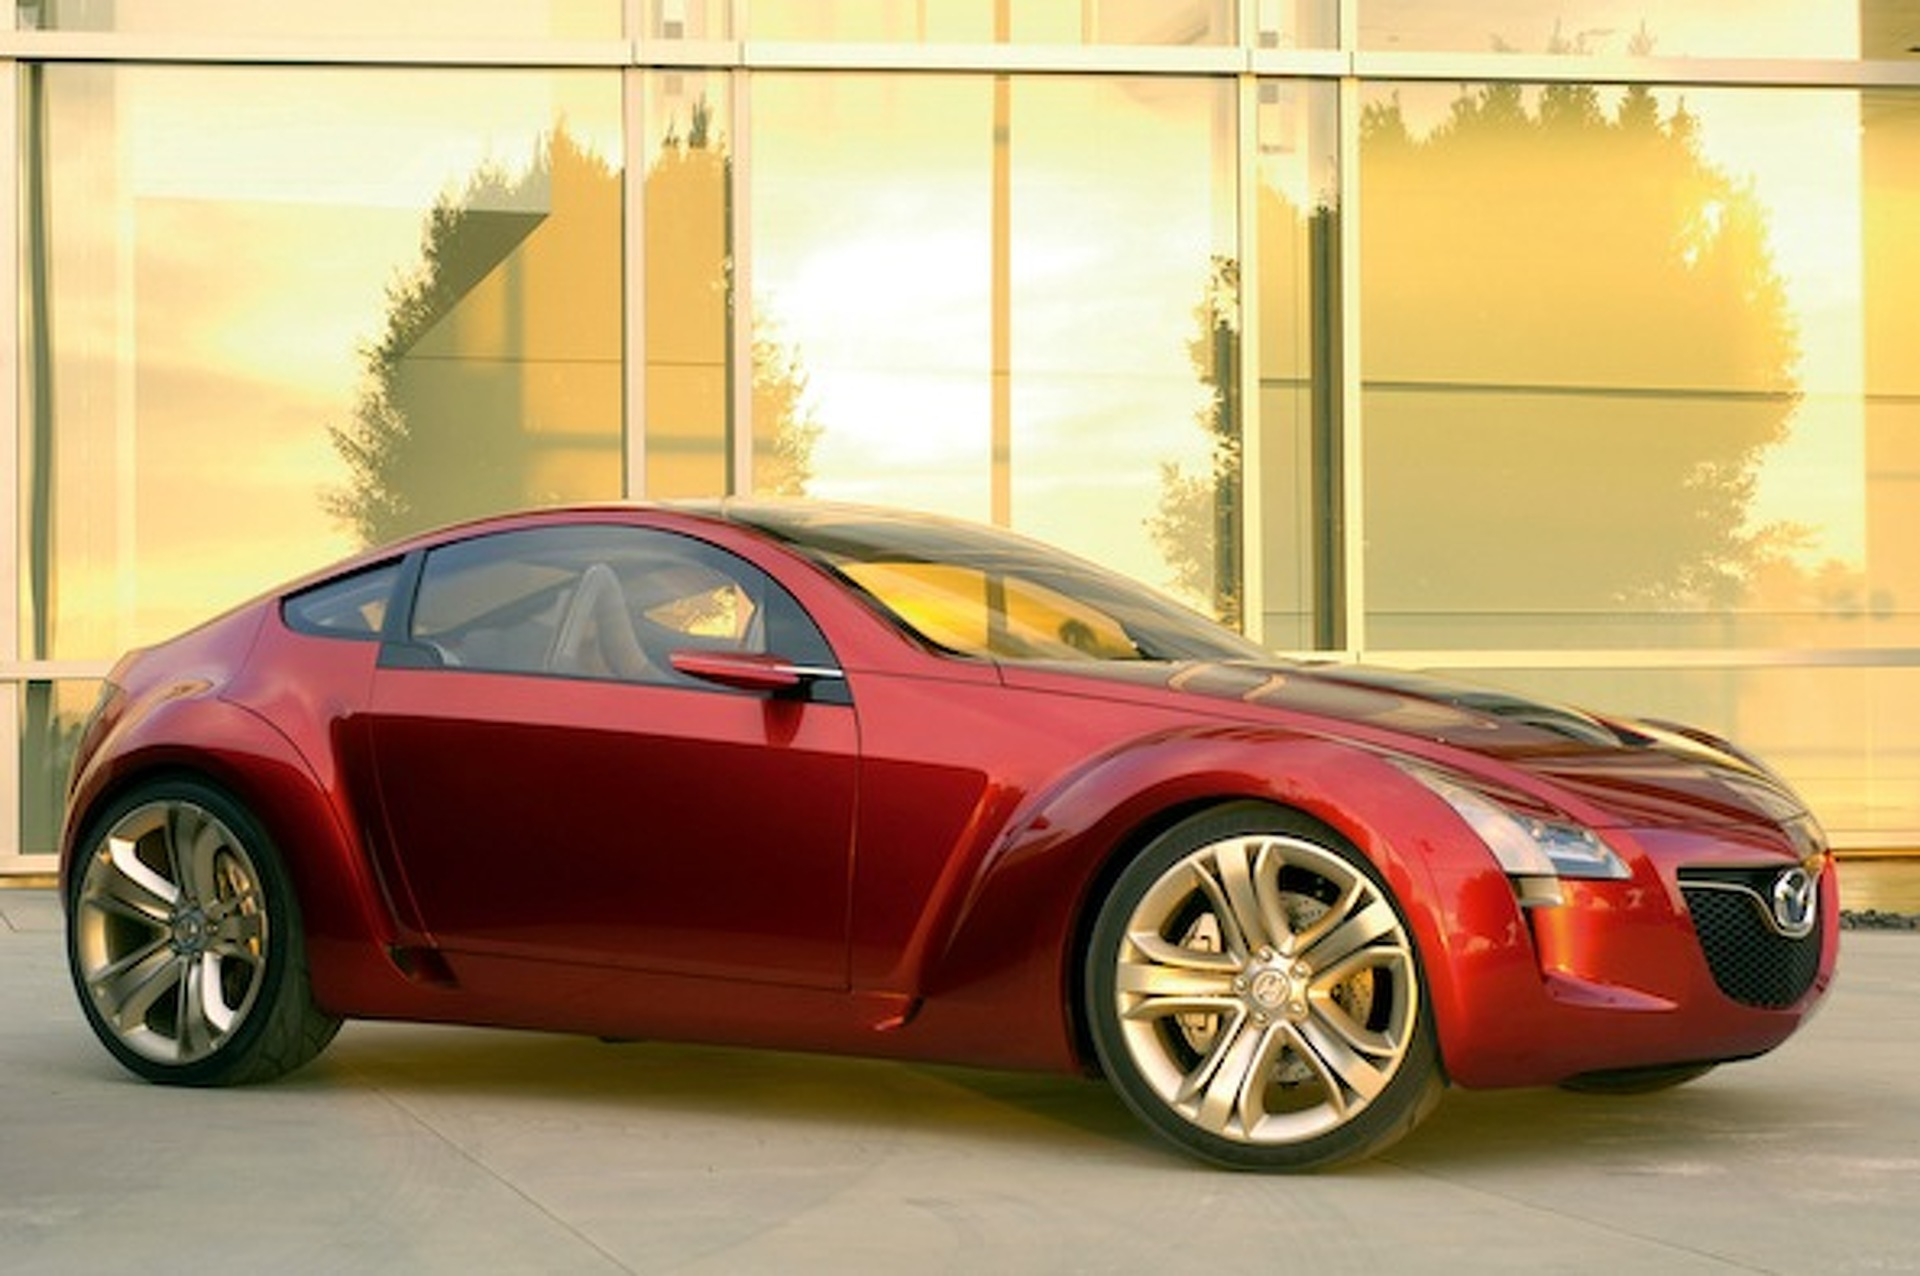 Mazda RX-7 Revival Scheduled for 2017?